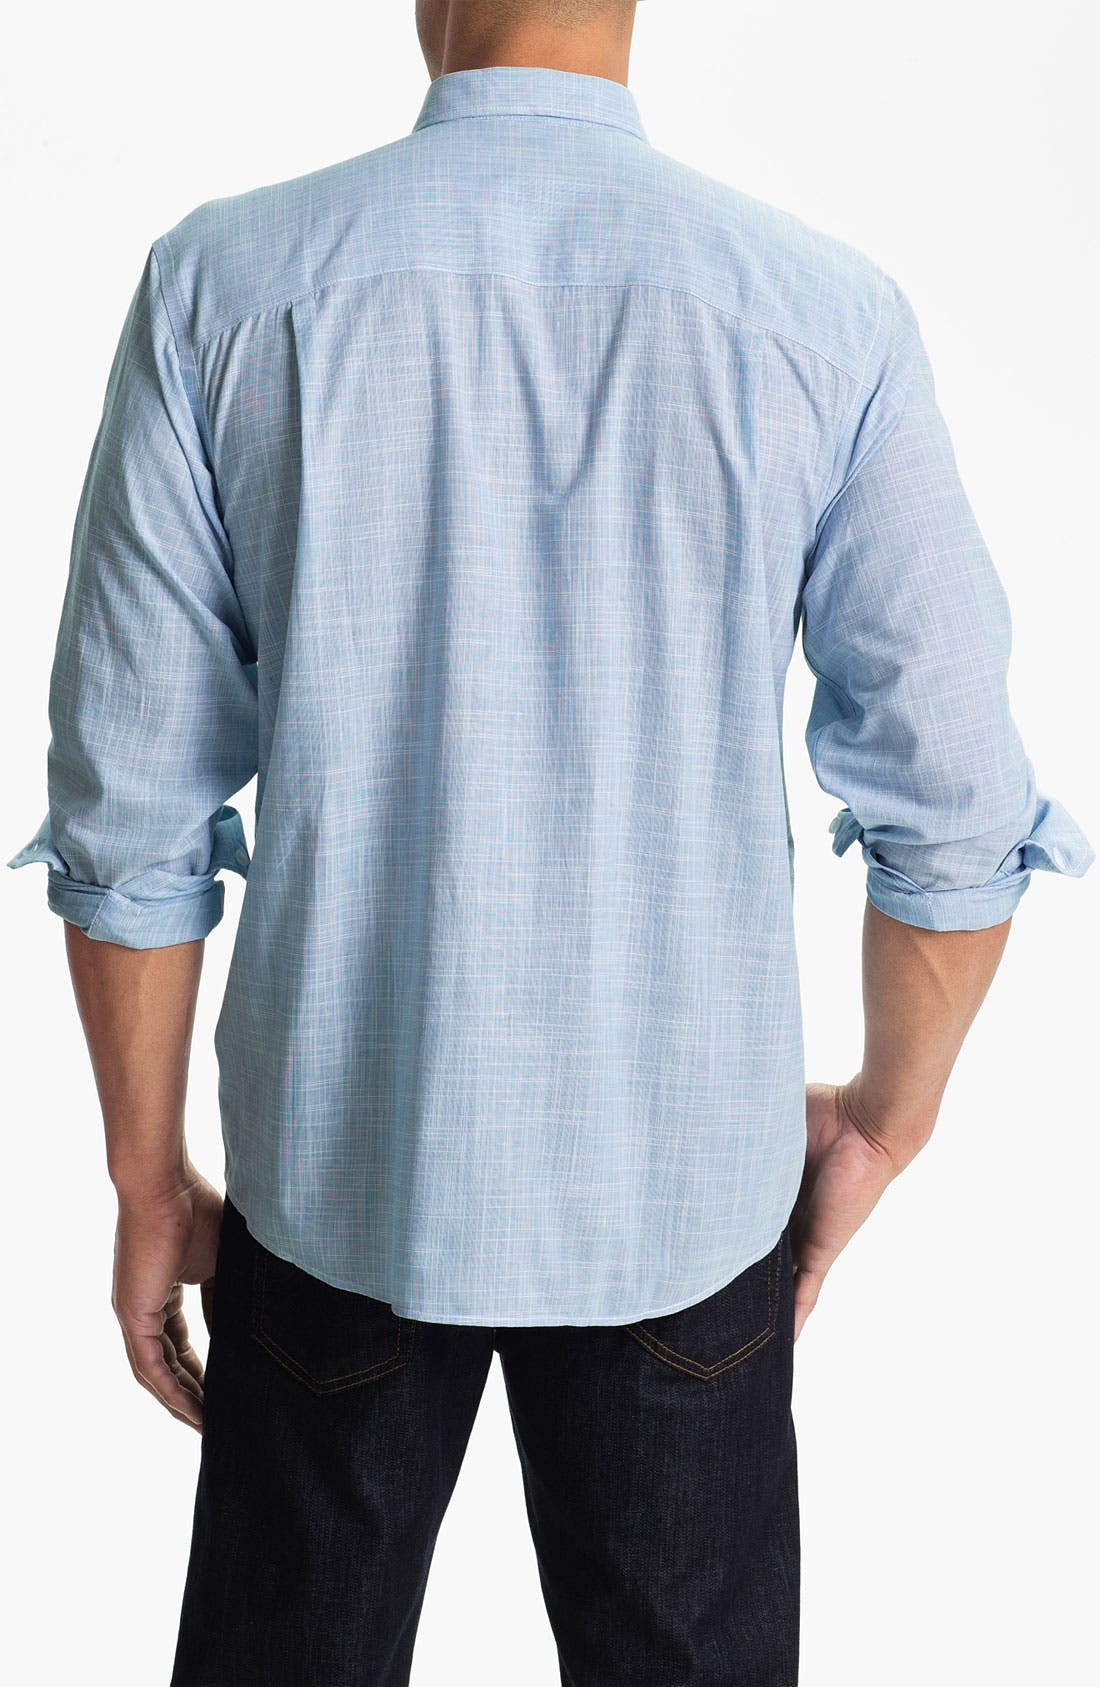 Alternate Image 2  - Cutter & Buck 'Blue Ridge Solid' Regular Fit Sport Shirt (Online Only)